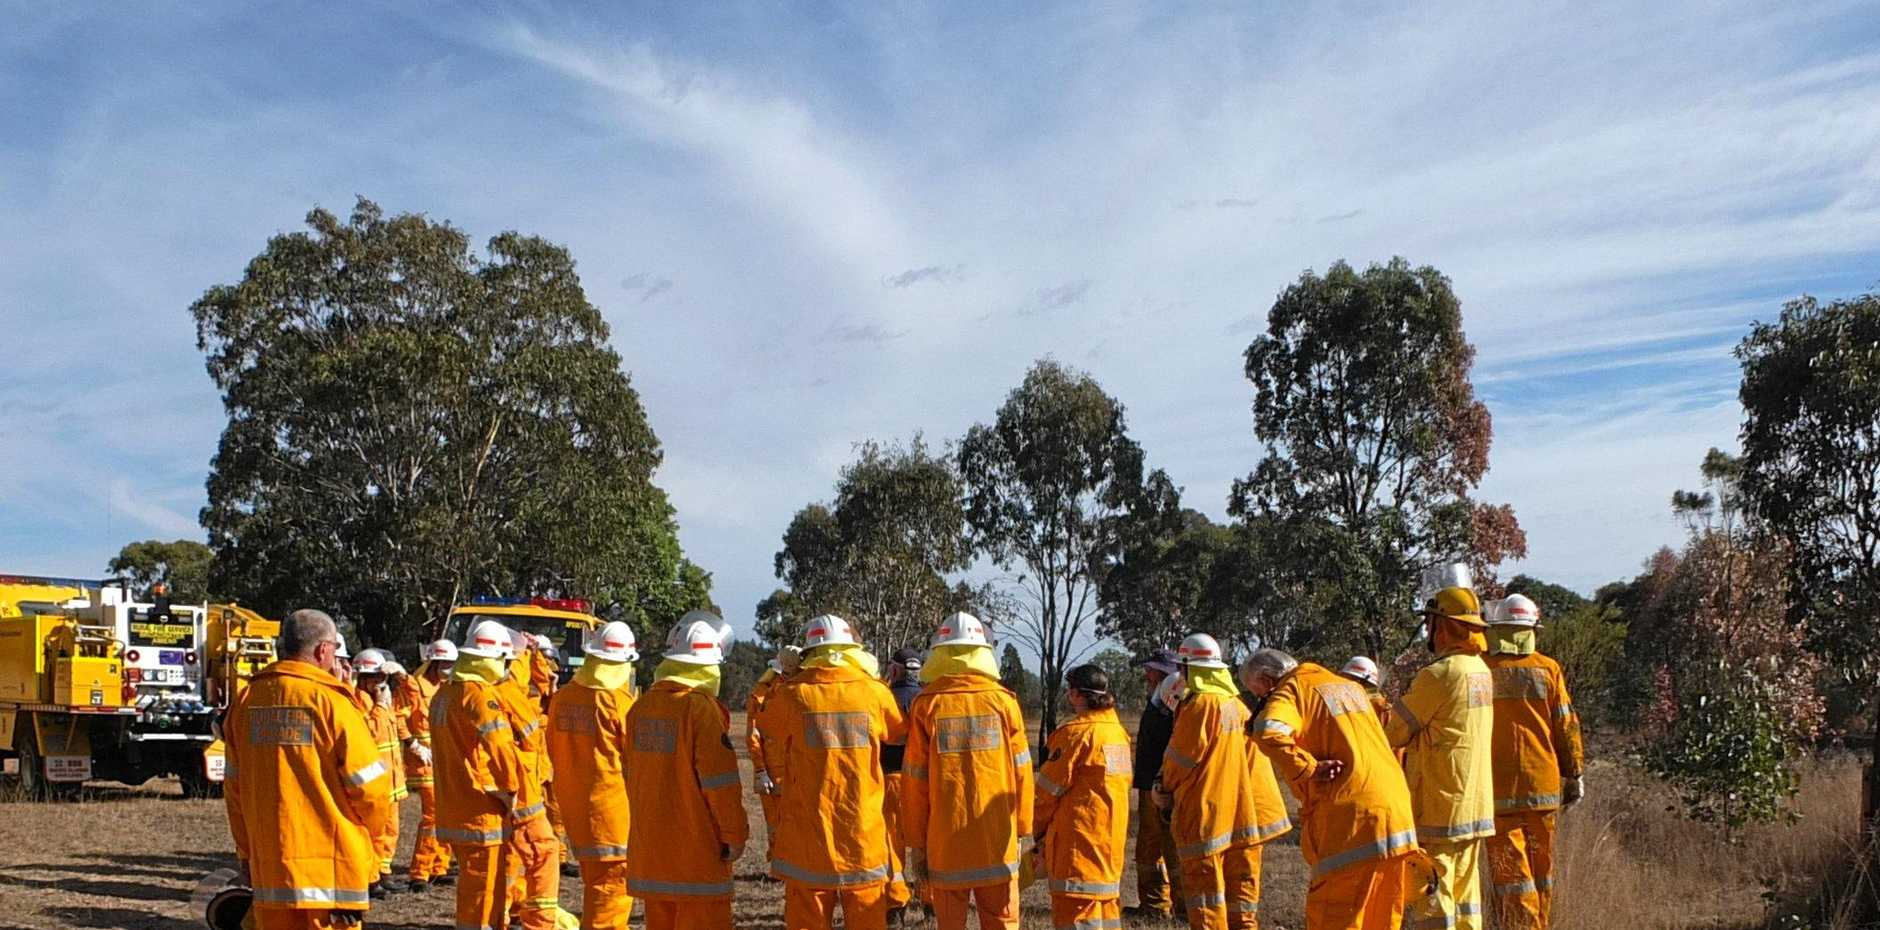 DRY GROUNDS: The Rural Fire Brigade at work.